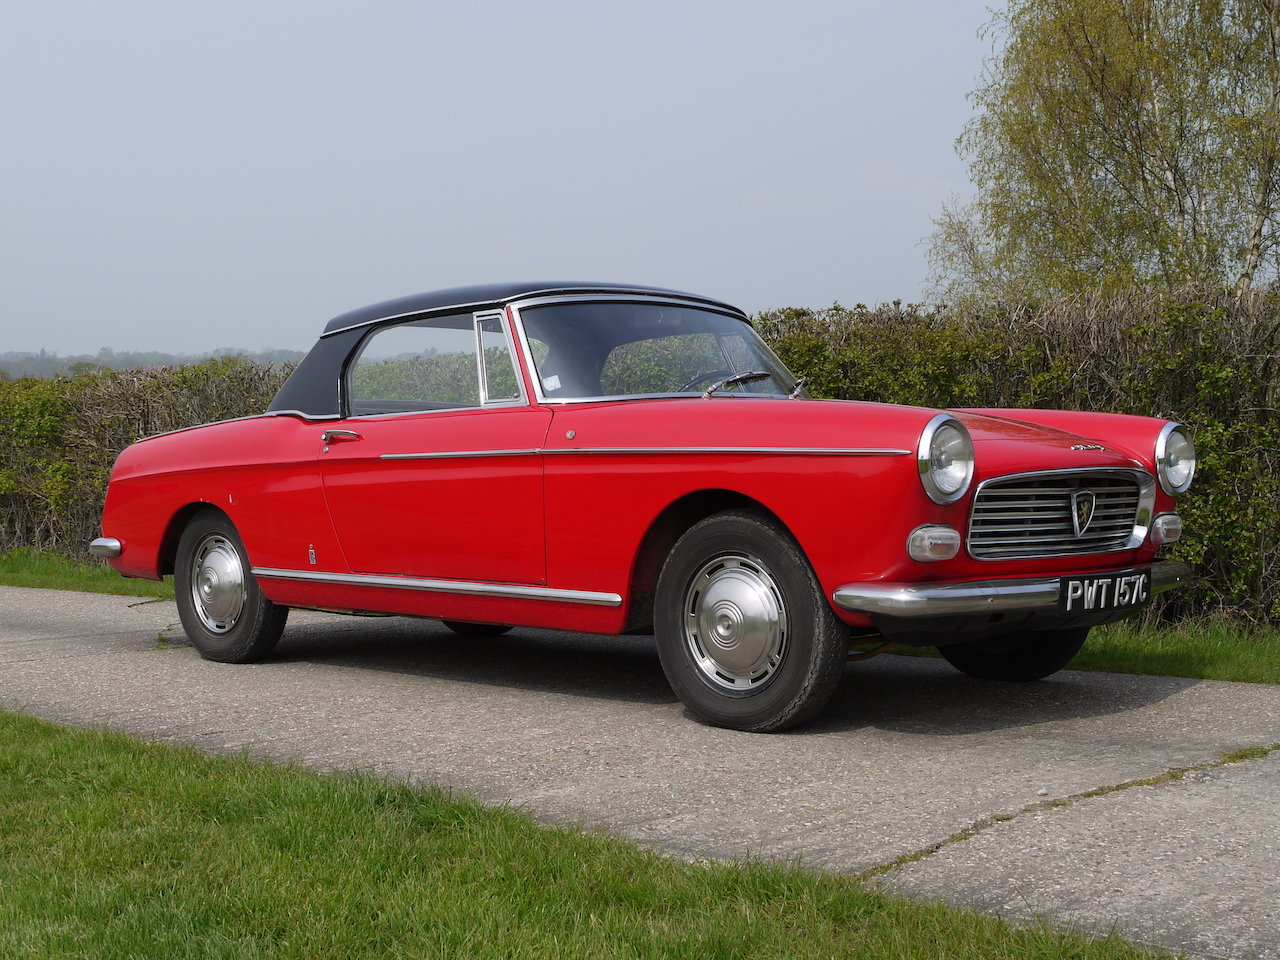 1965 Peugeot 404 Cabriolet For Sale (picture 1 of 6)